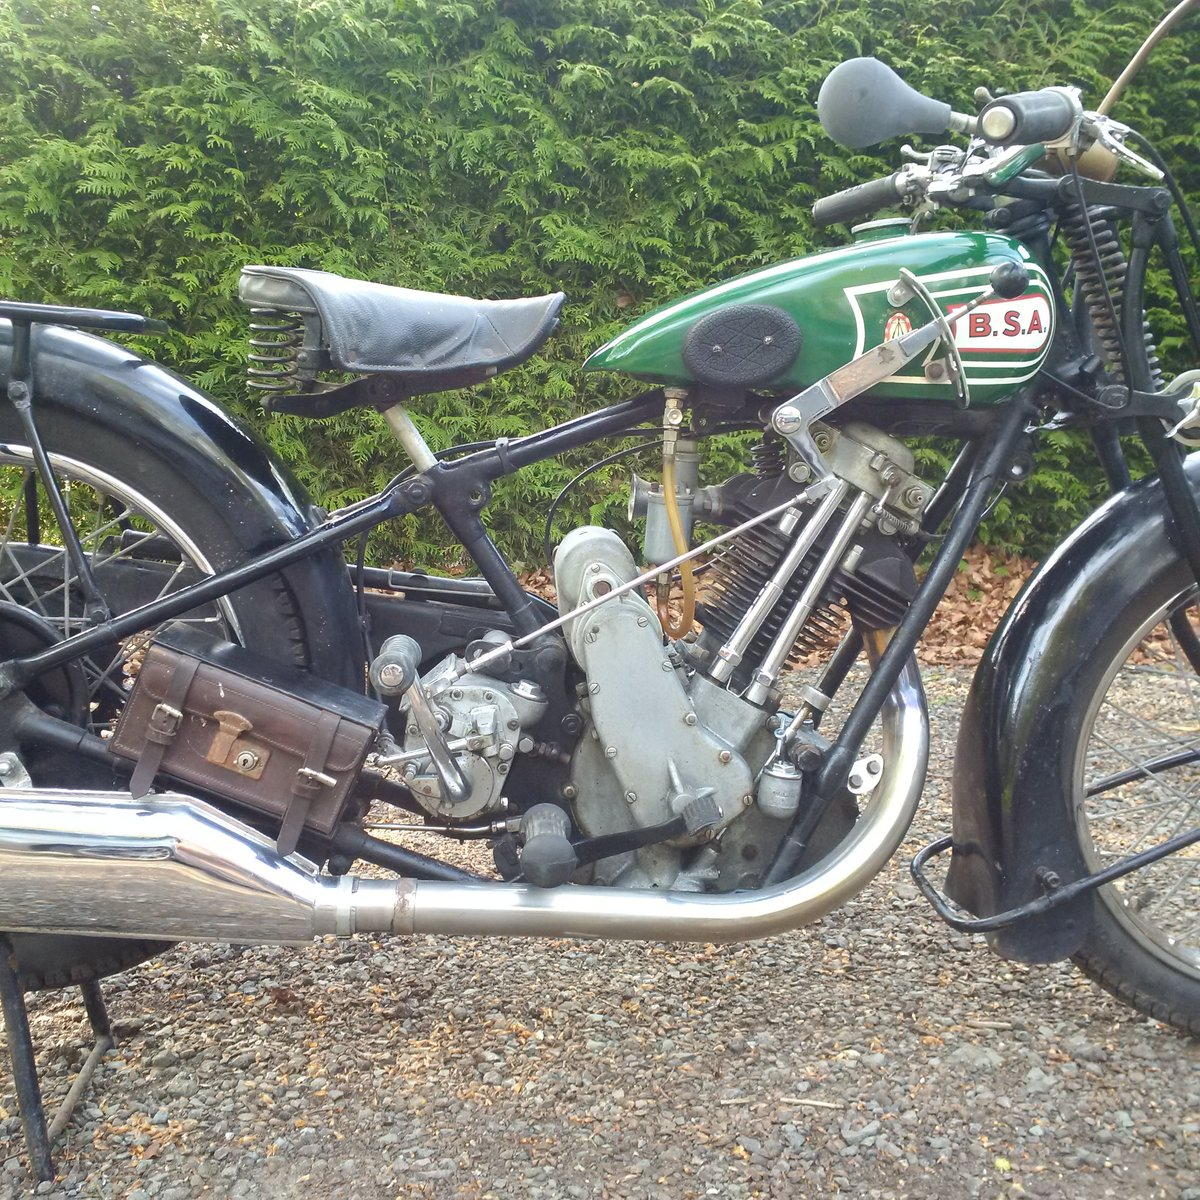 1928 From private classic collection - BSA Sloper For Sale (picture 3 of 3)